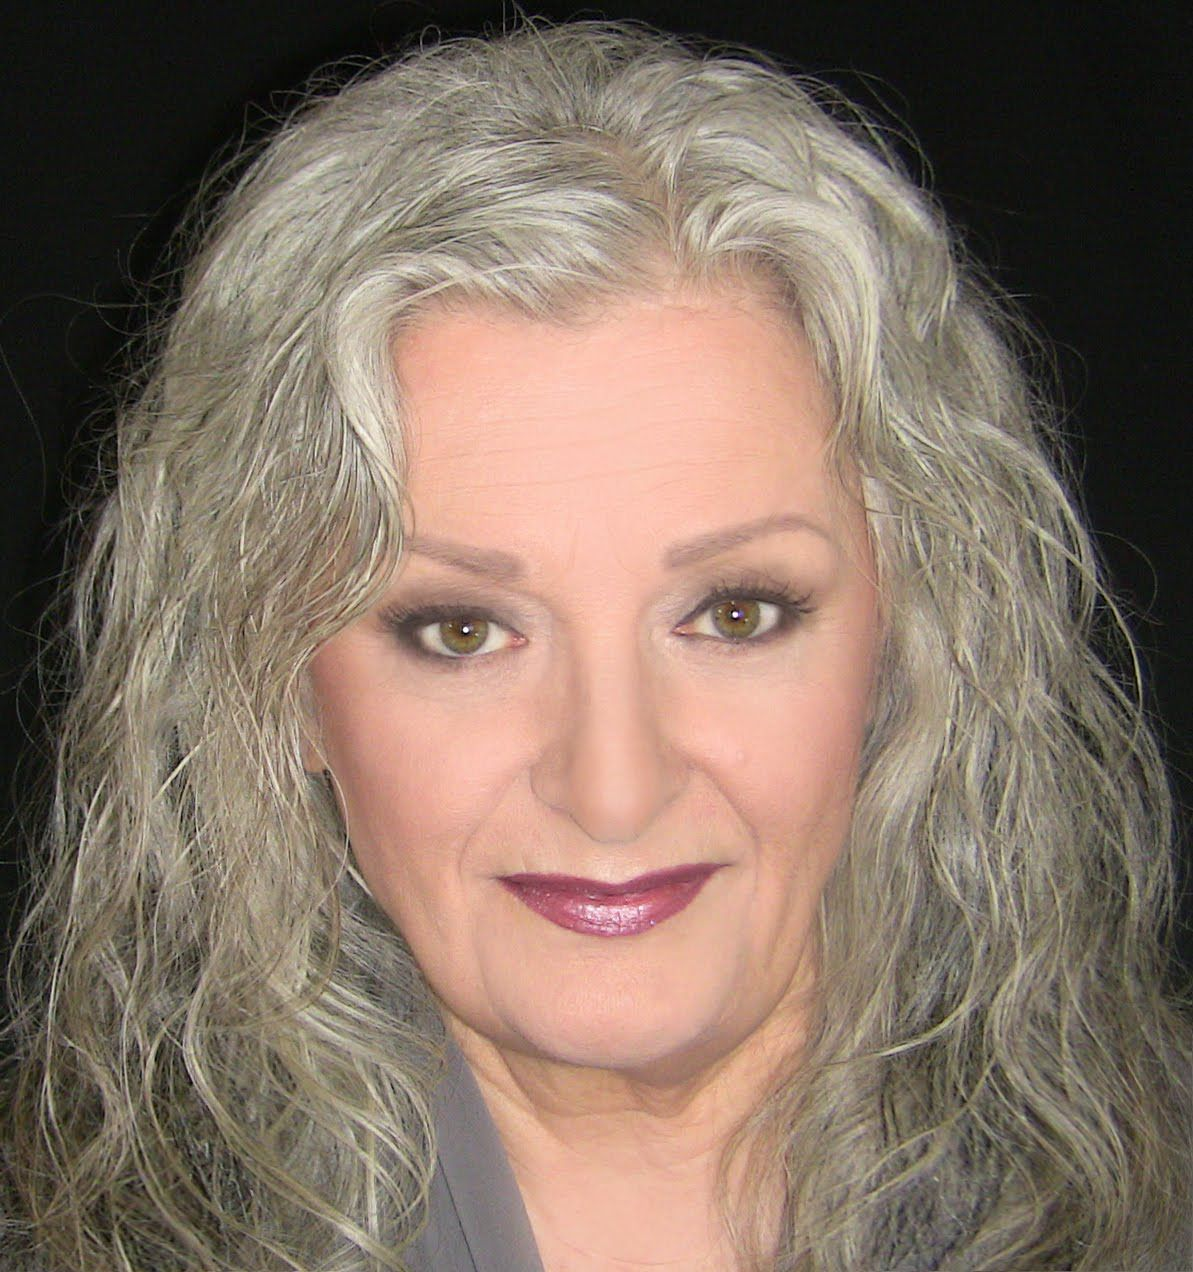 Extensions for natural curly or wavy gray hair d hair ideas embracing your natural wave or curl is another step to maintenance freedom and variety in styling options and for those with thinning hair extensions pmusecretfo Images